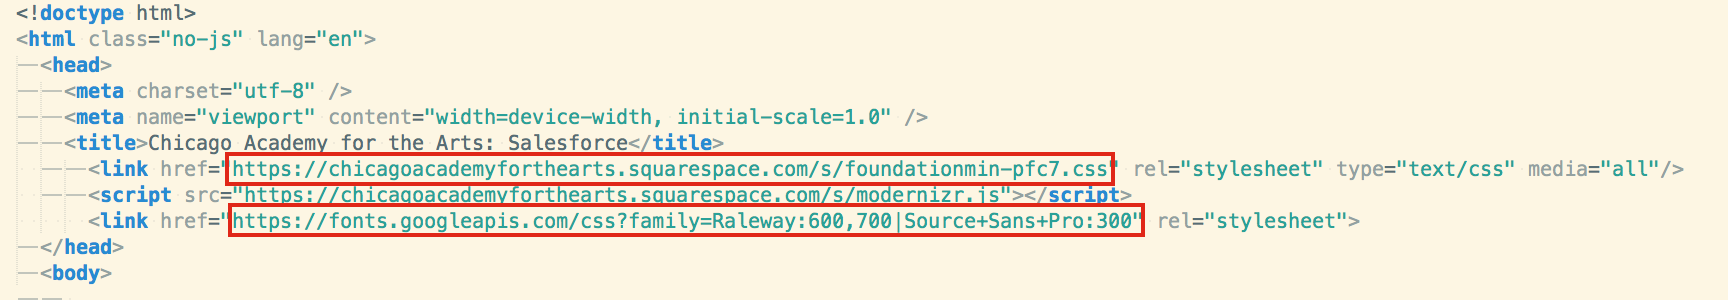 New css file with updates for fonts, link colors and button.